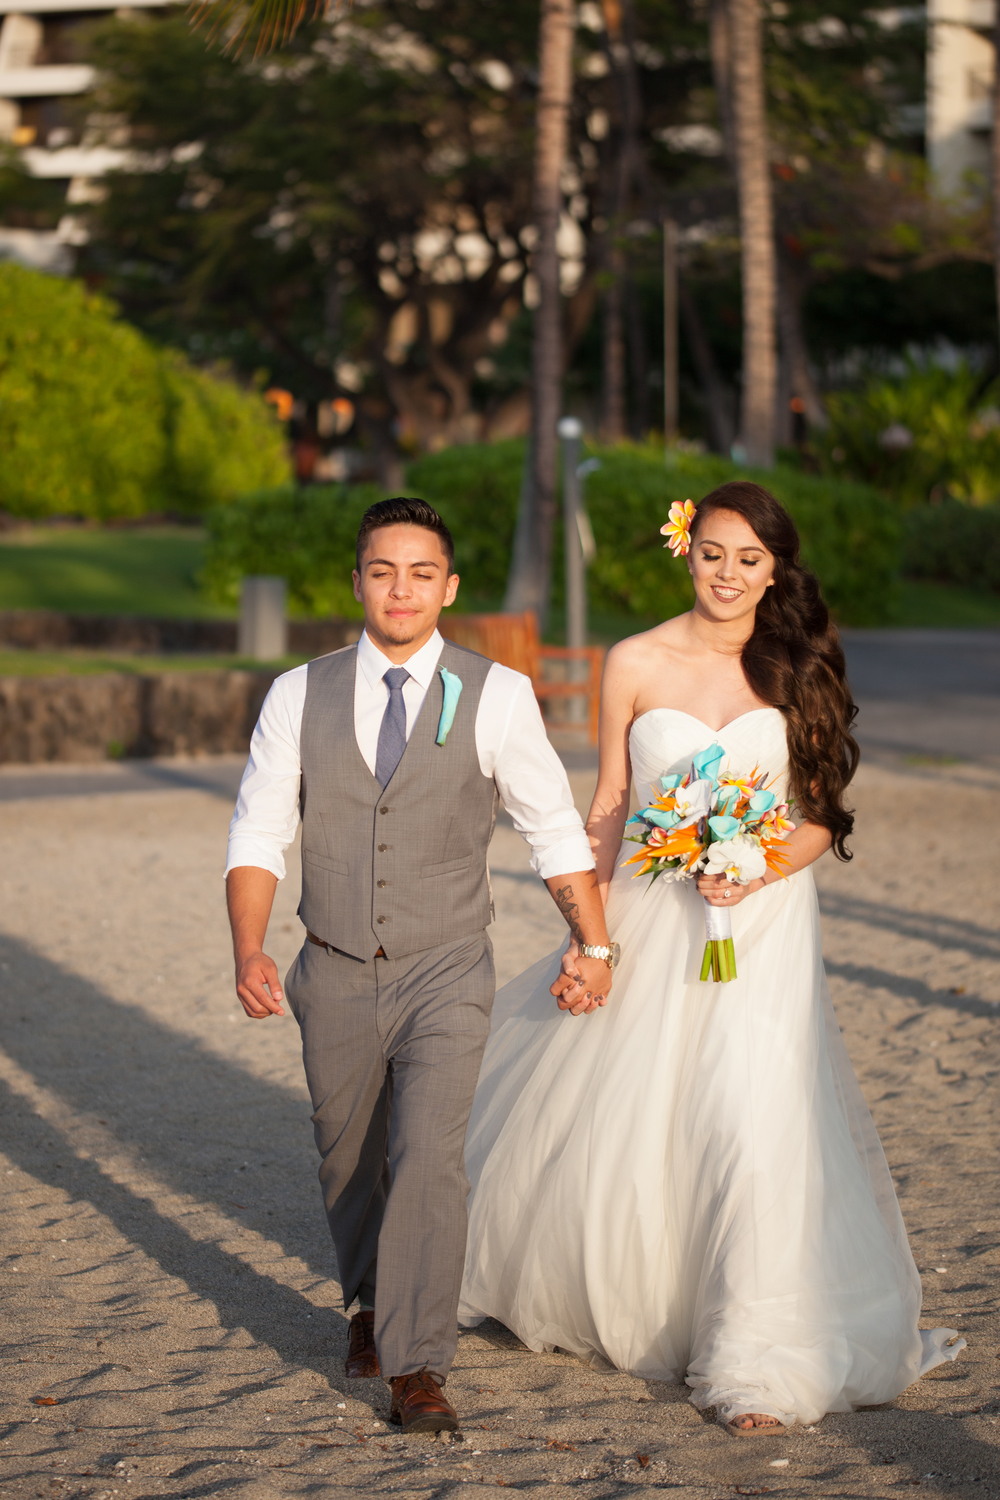 big island hawaii mauna lani resort wedding © kelilina photography 20160523181645-1.jpg